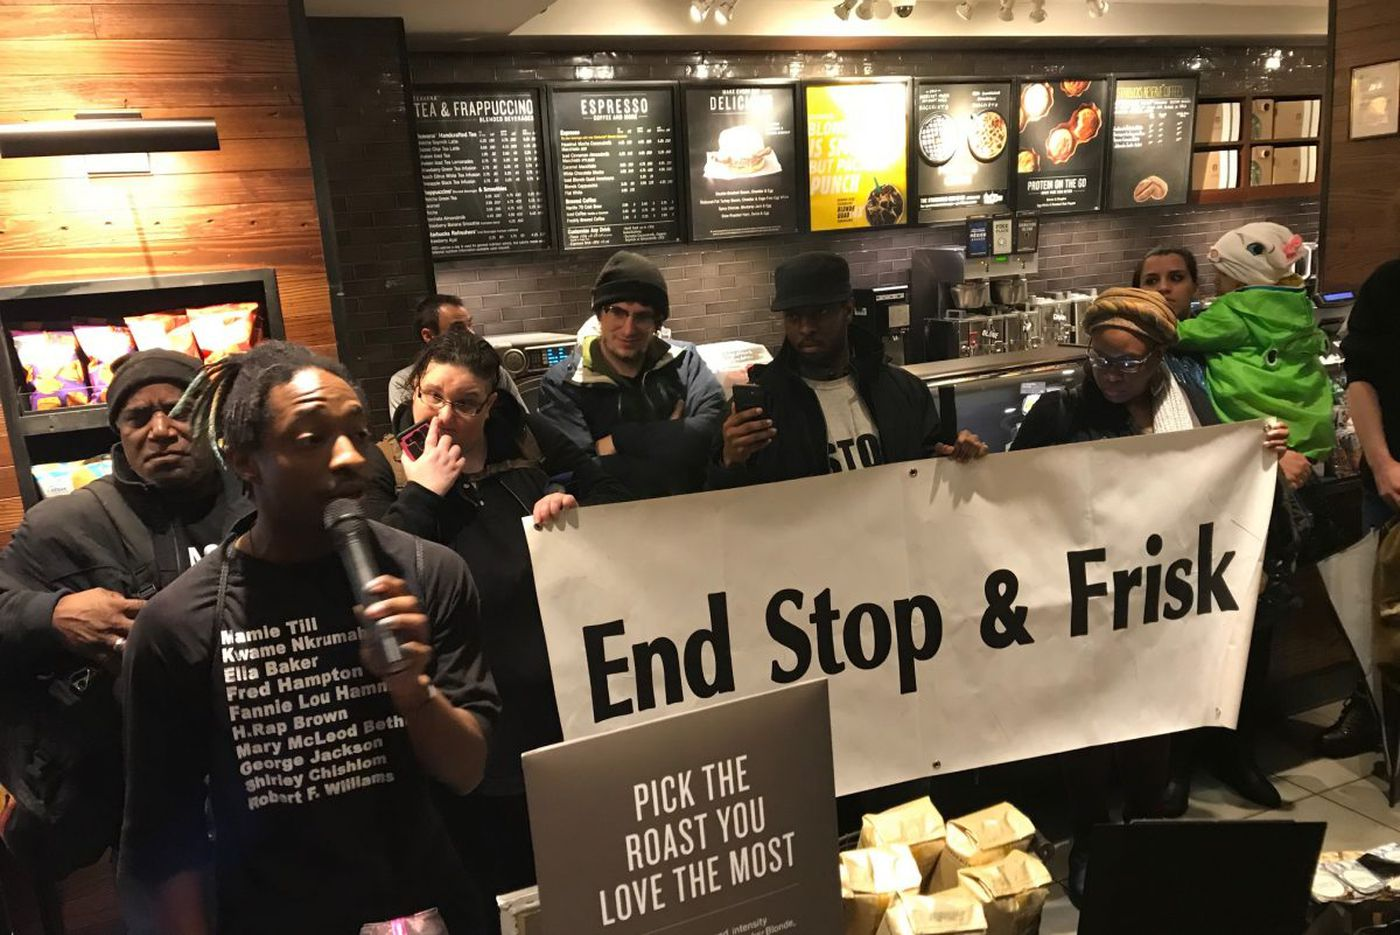 Protests mount, Starbucks CEO apologizes, for arrests of 2 black men at Philadelphia store